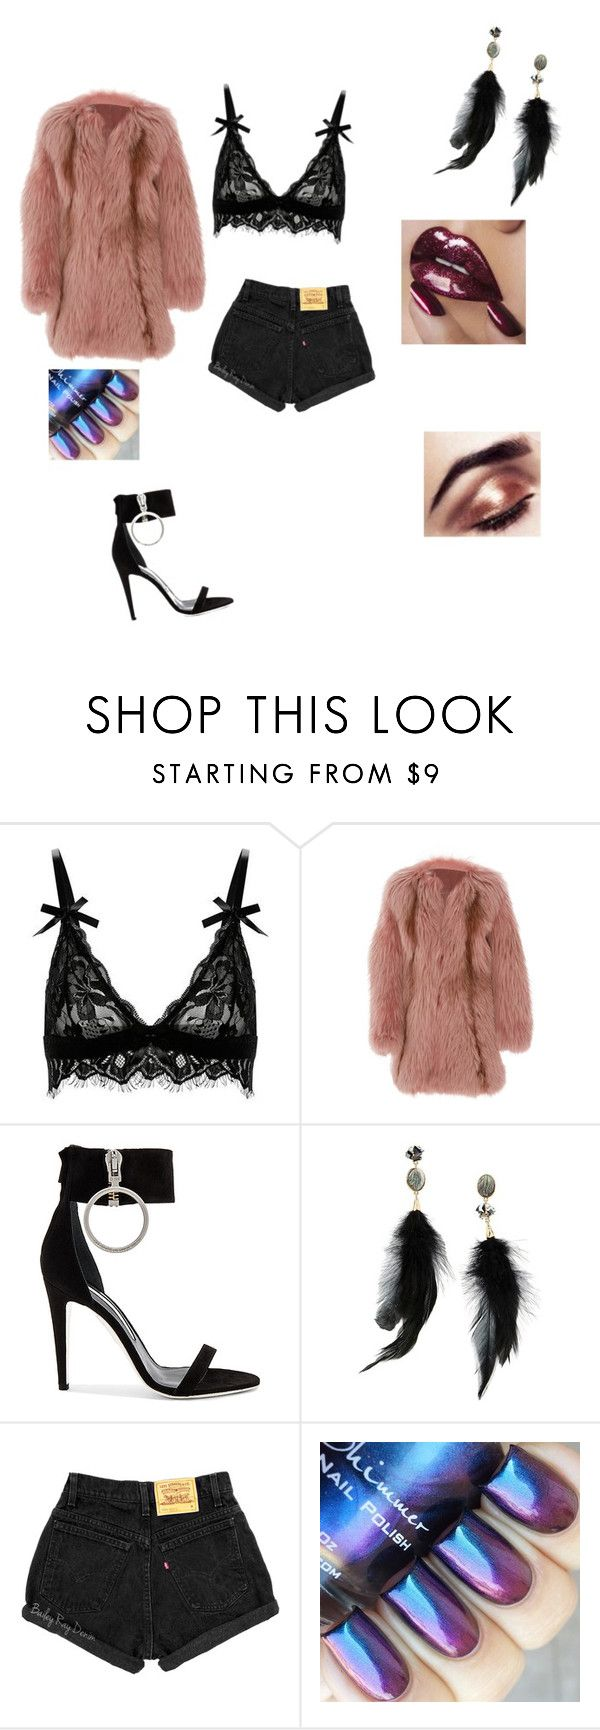 """Nicki Manja"" by bossdancer ❤ liked on Polyvore featuring J. Mendel, Off-White and Betsey Johnson"